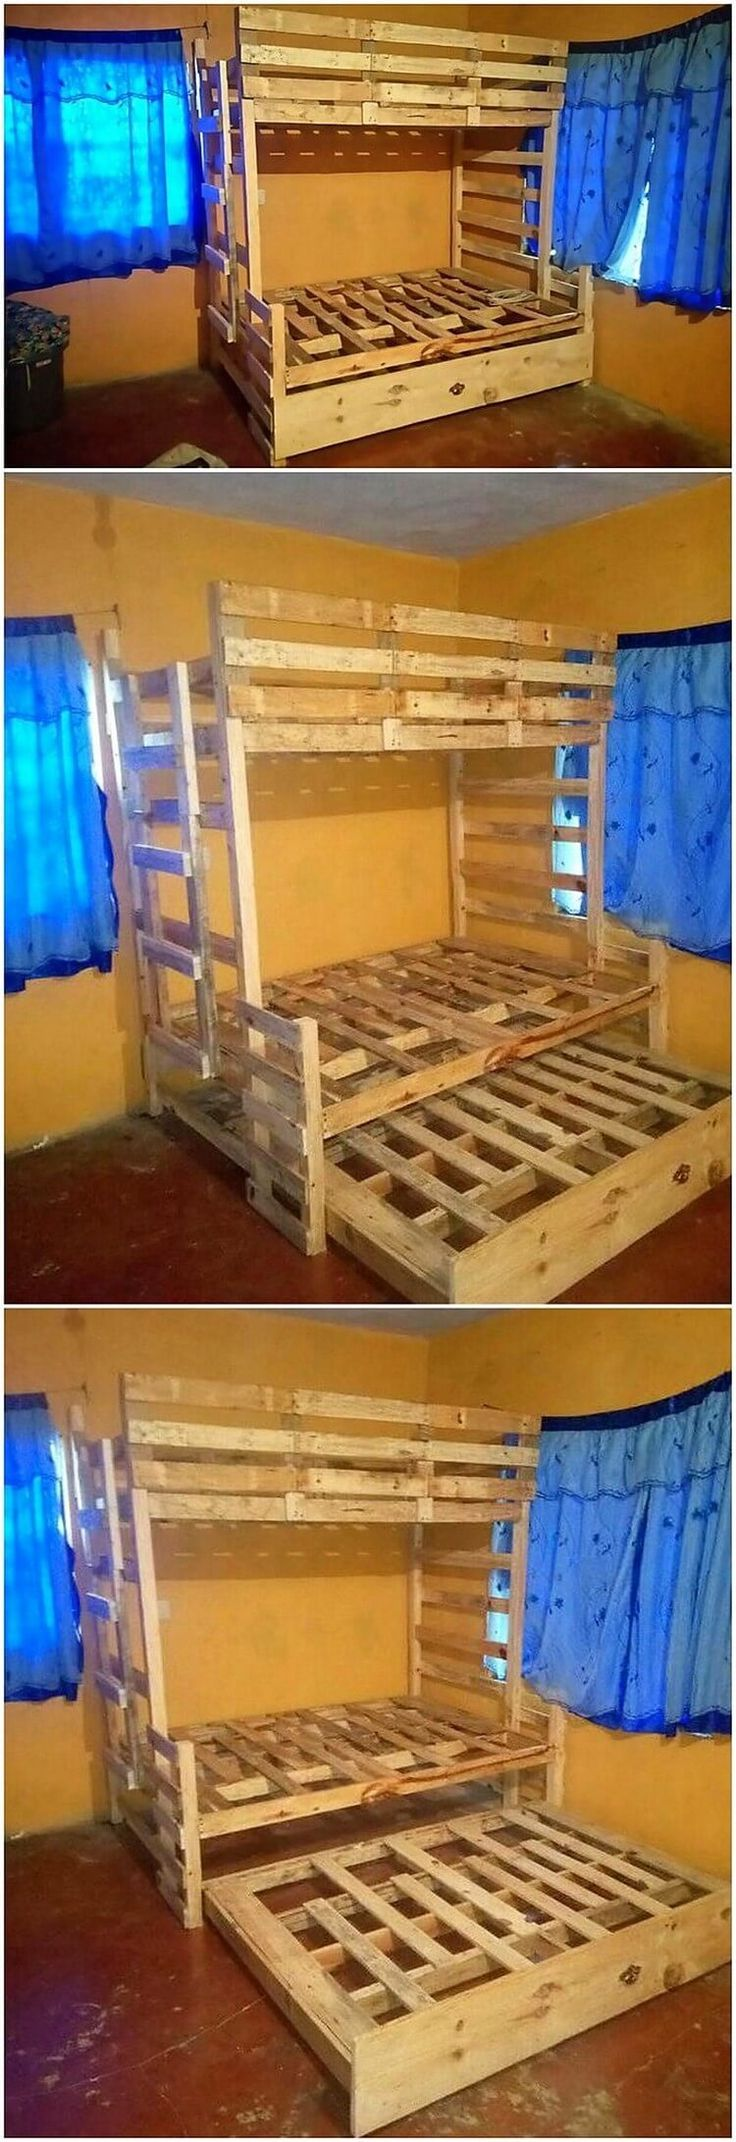 In this idea of the rustic wood pallet double bunk bed you can view the excess of the planks of the wood pallet stacking that are used in it. It is a form of the long giant bunk bed that is much design in the old fashion wood pallet designs. You can even ideally make it place in your bedroom or kids room.